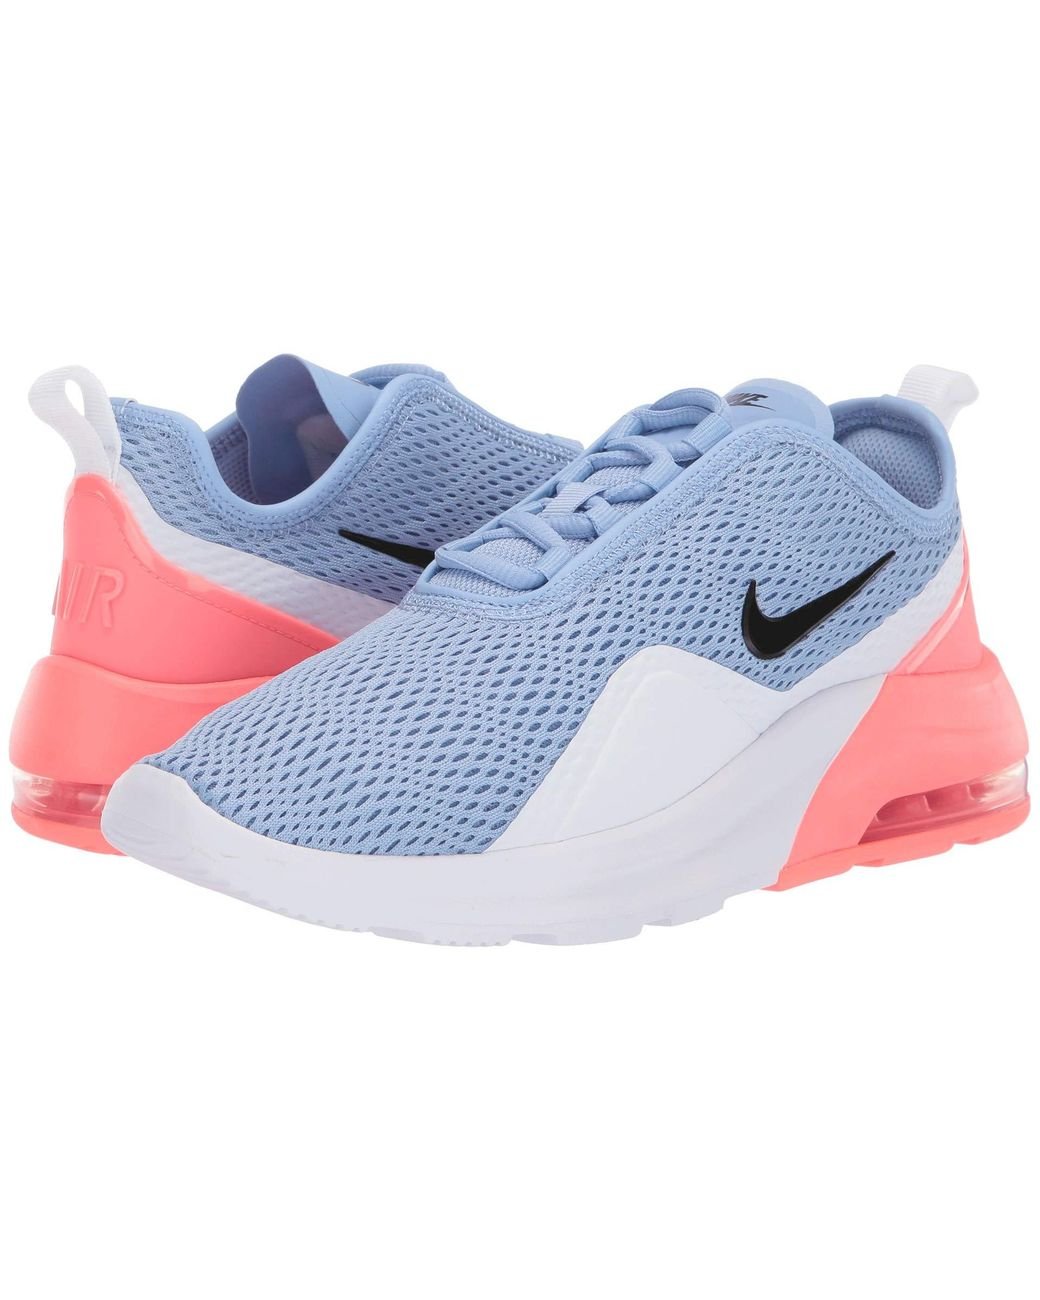 meet 2141a bf783 Nike Air Max Motion 2 (white laser Fuchsia pale Pink) Women s Running Shoes  - Lyst